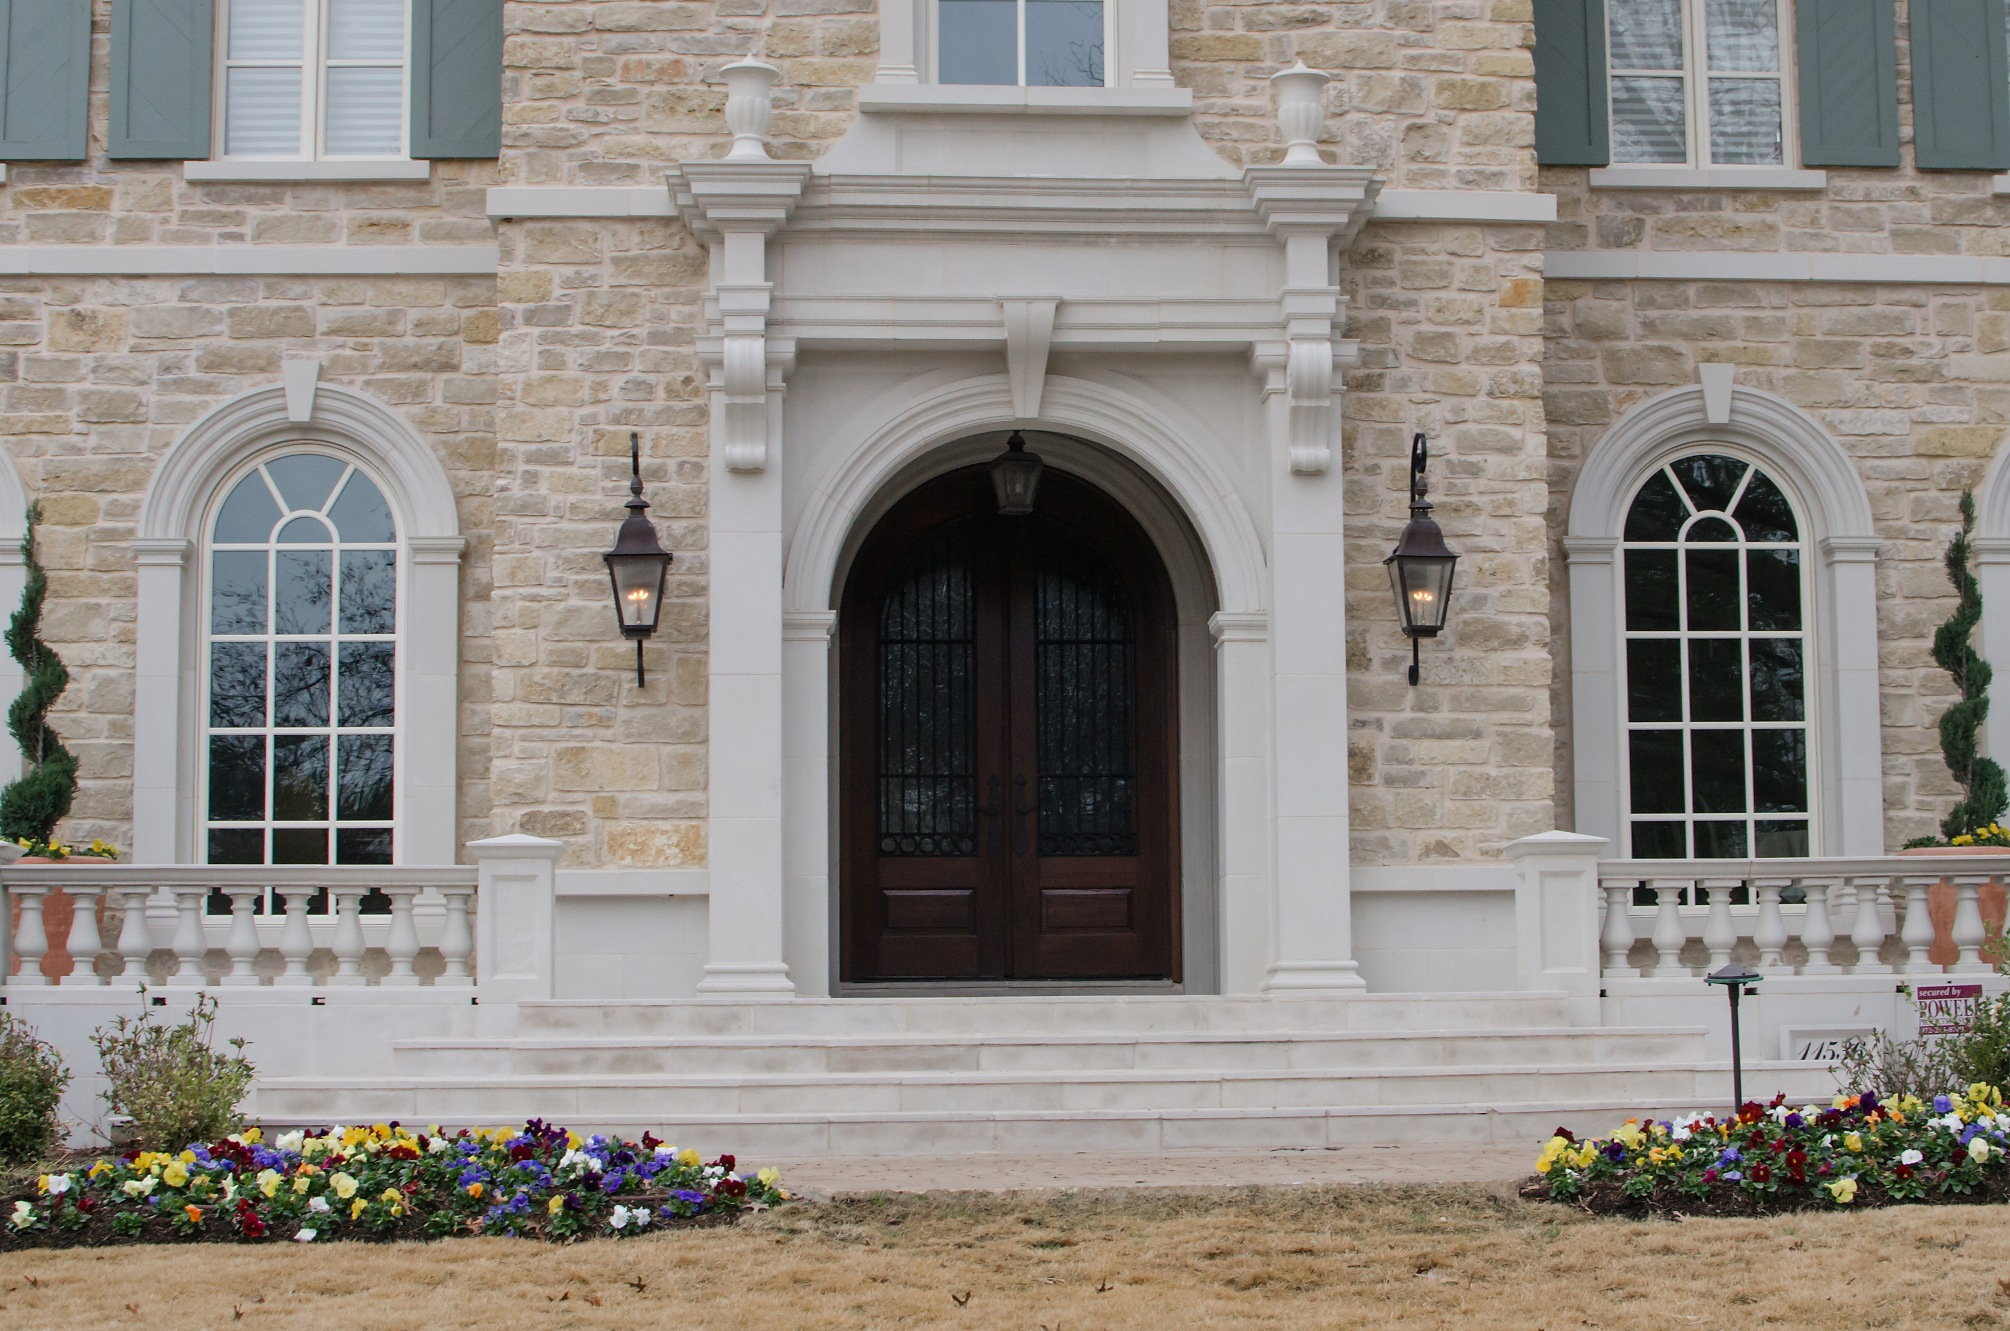 Aadvanced Architectural Stone Residential Projects Rich Design